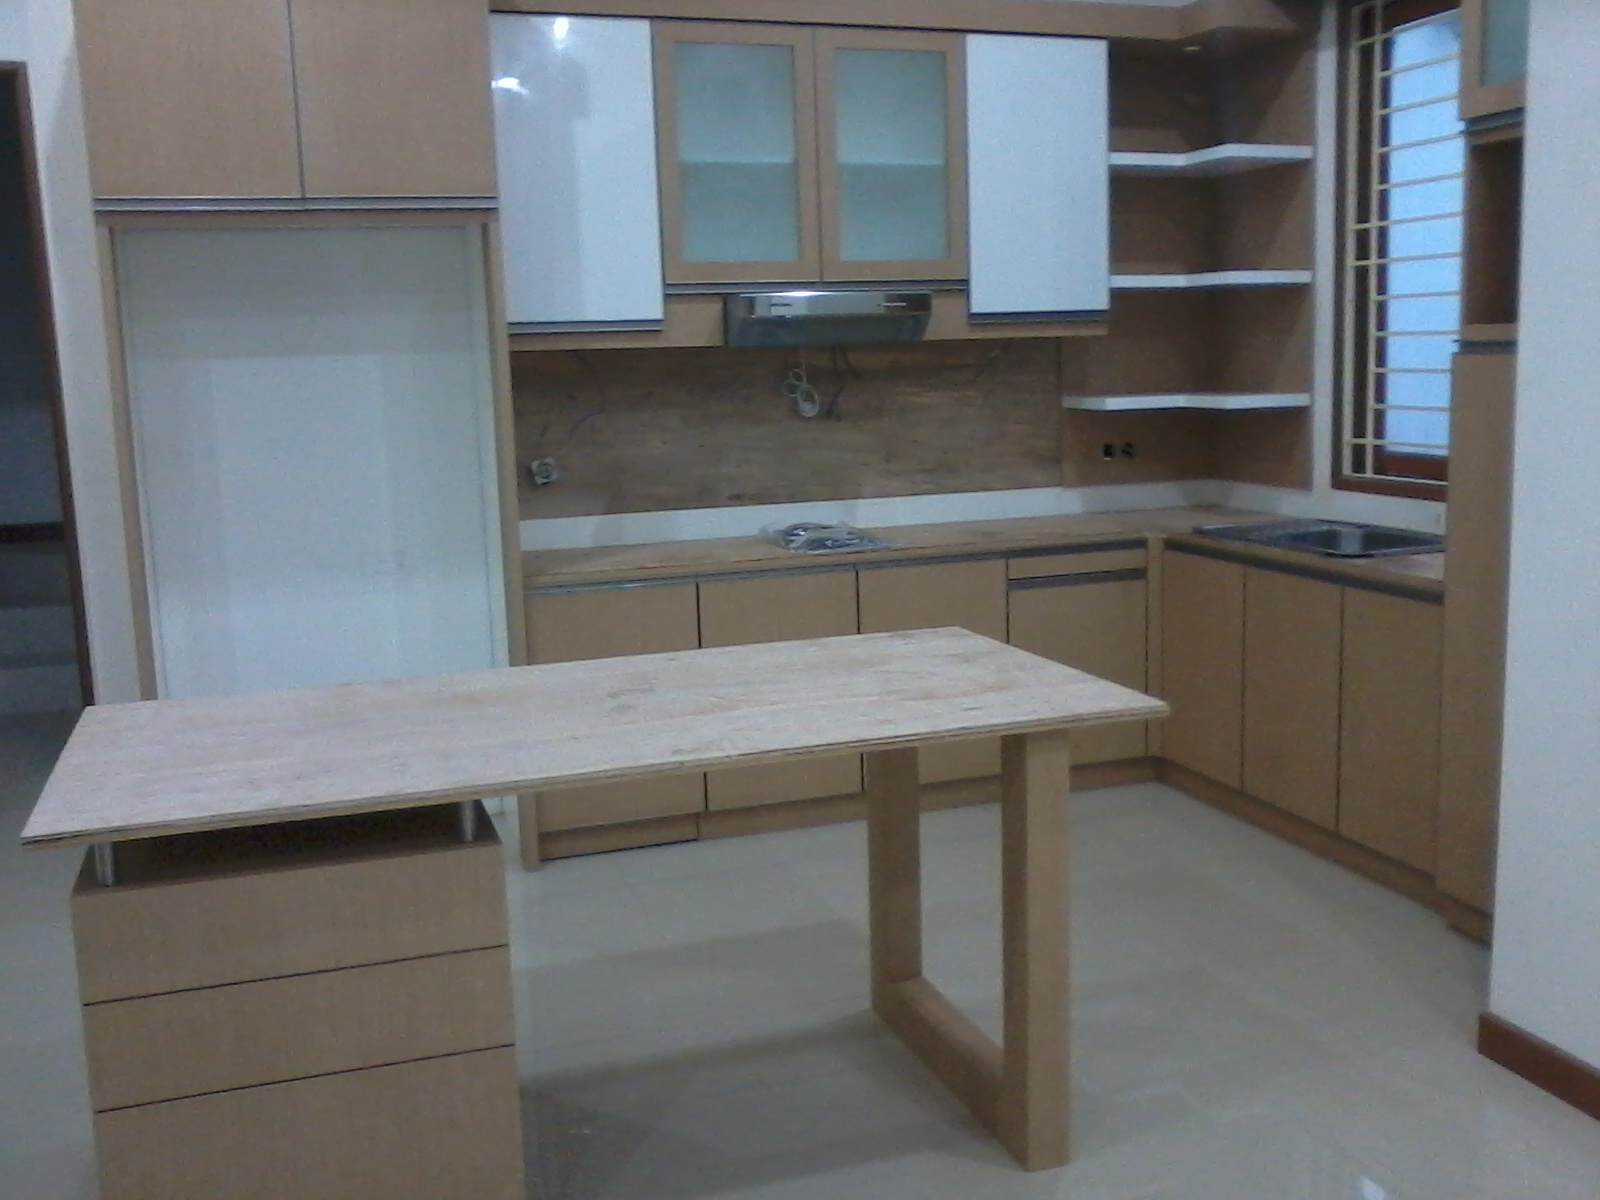 Dapur Jelek Jasa Mebel Interior: Jasa Mebel, Jasa Furniture